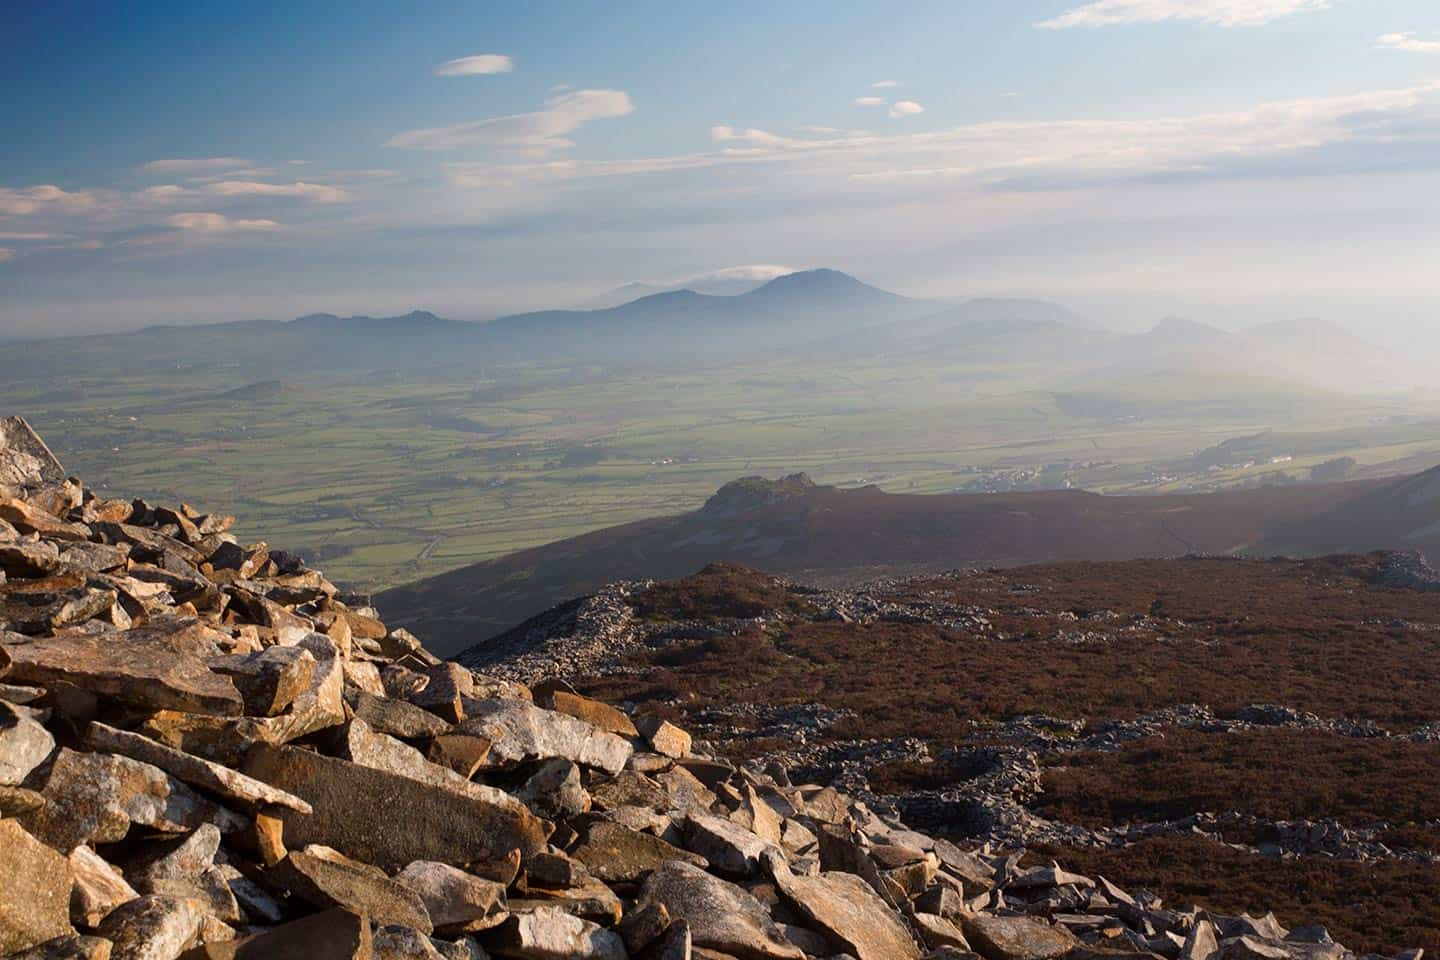 Image of the Tre'r Ceiri Iron Age hillfort in North Wales